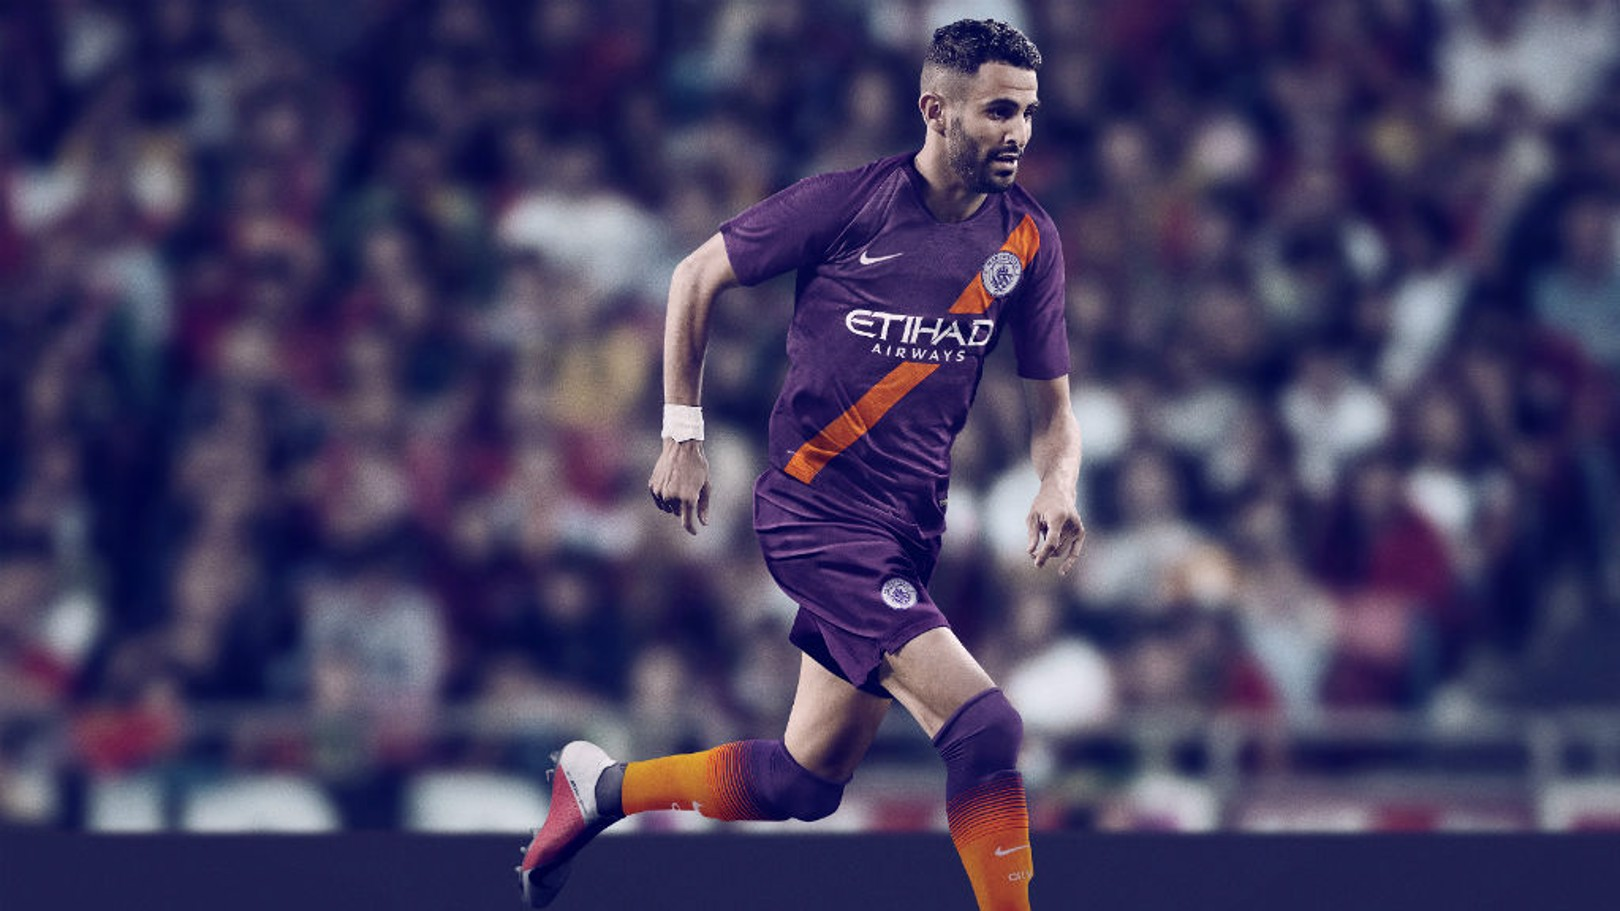 REVEALED: City's new third kit, inspired by the past and present.